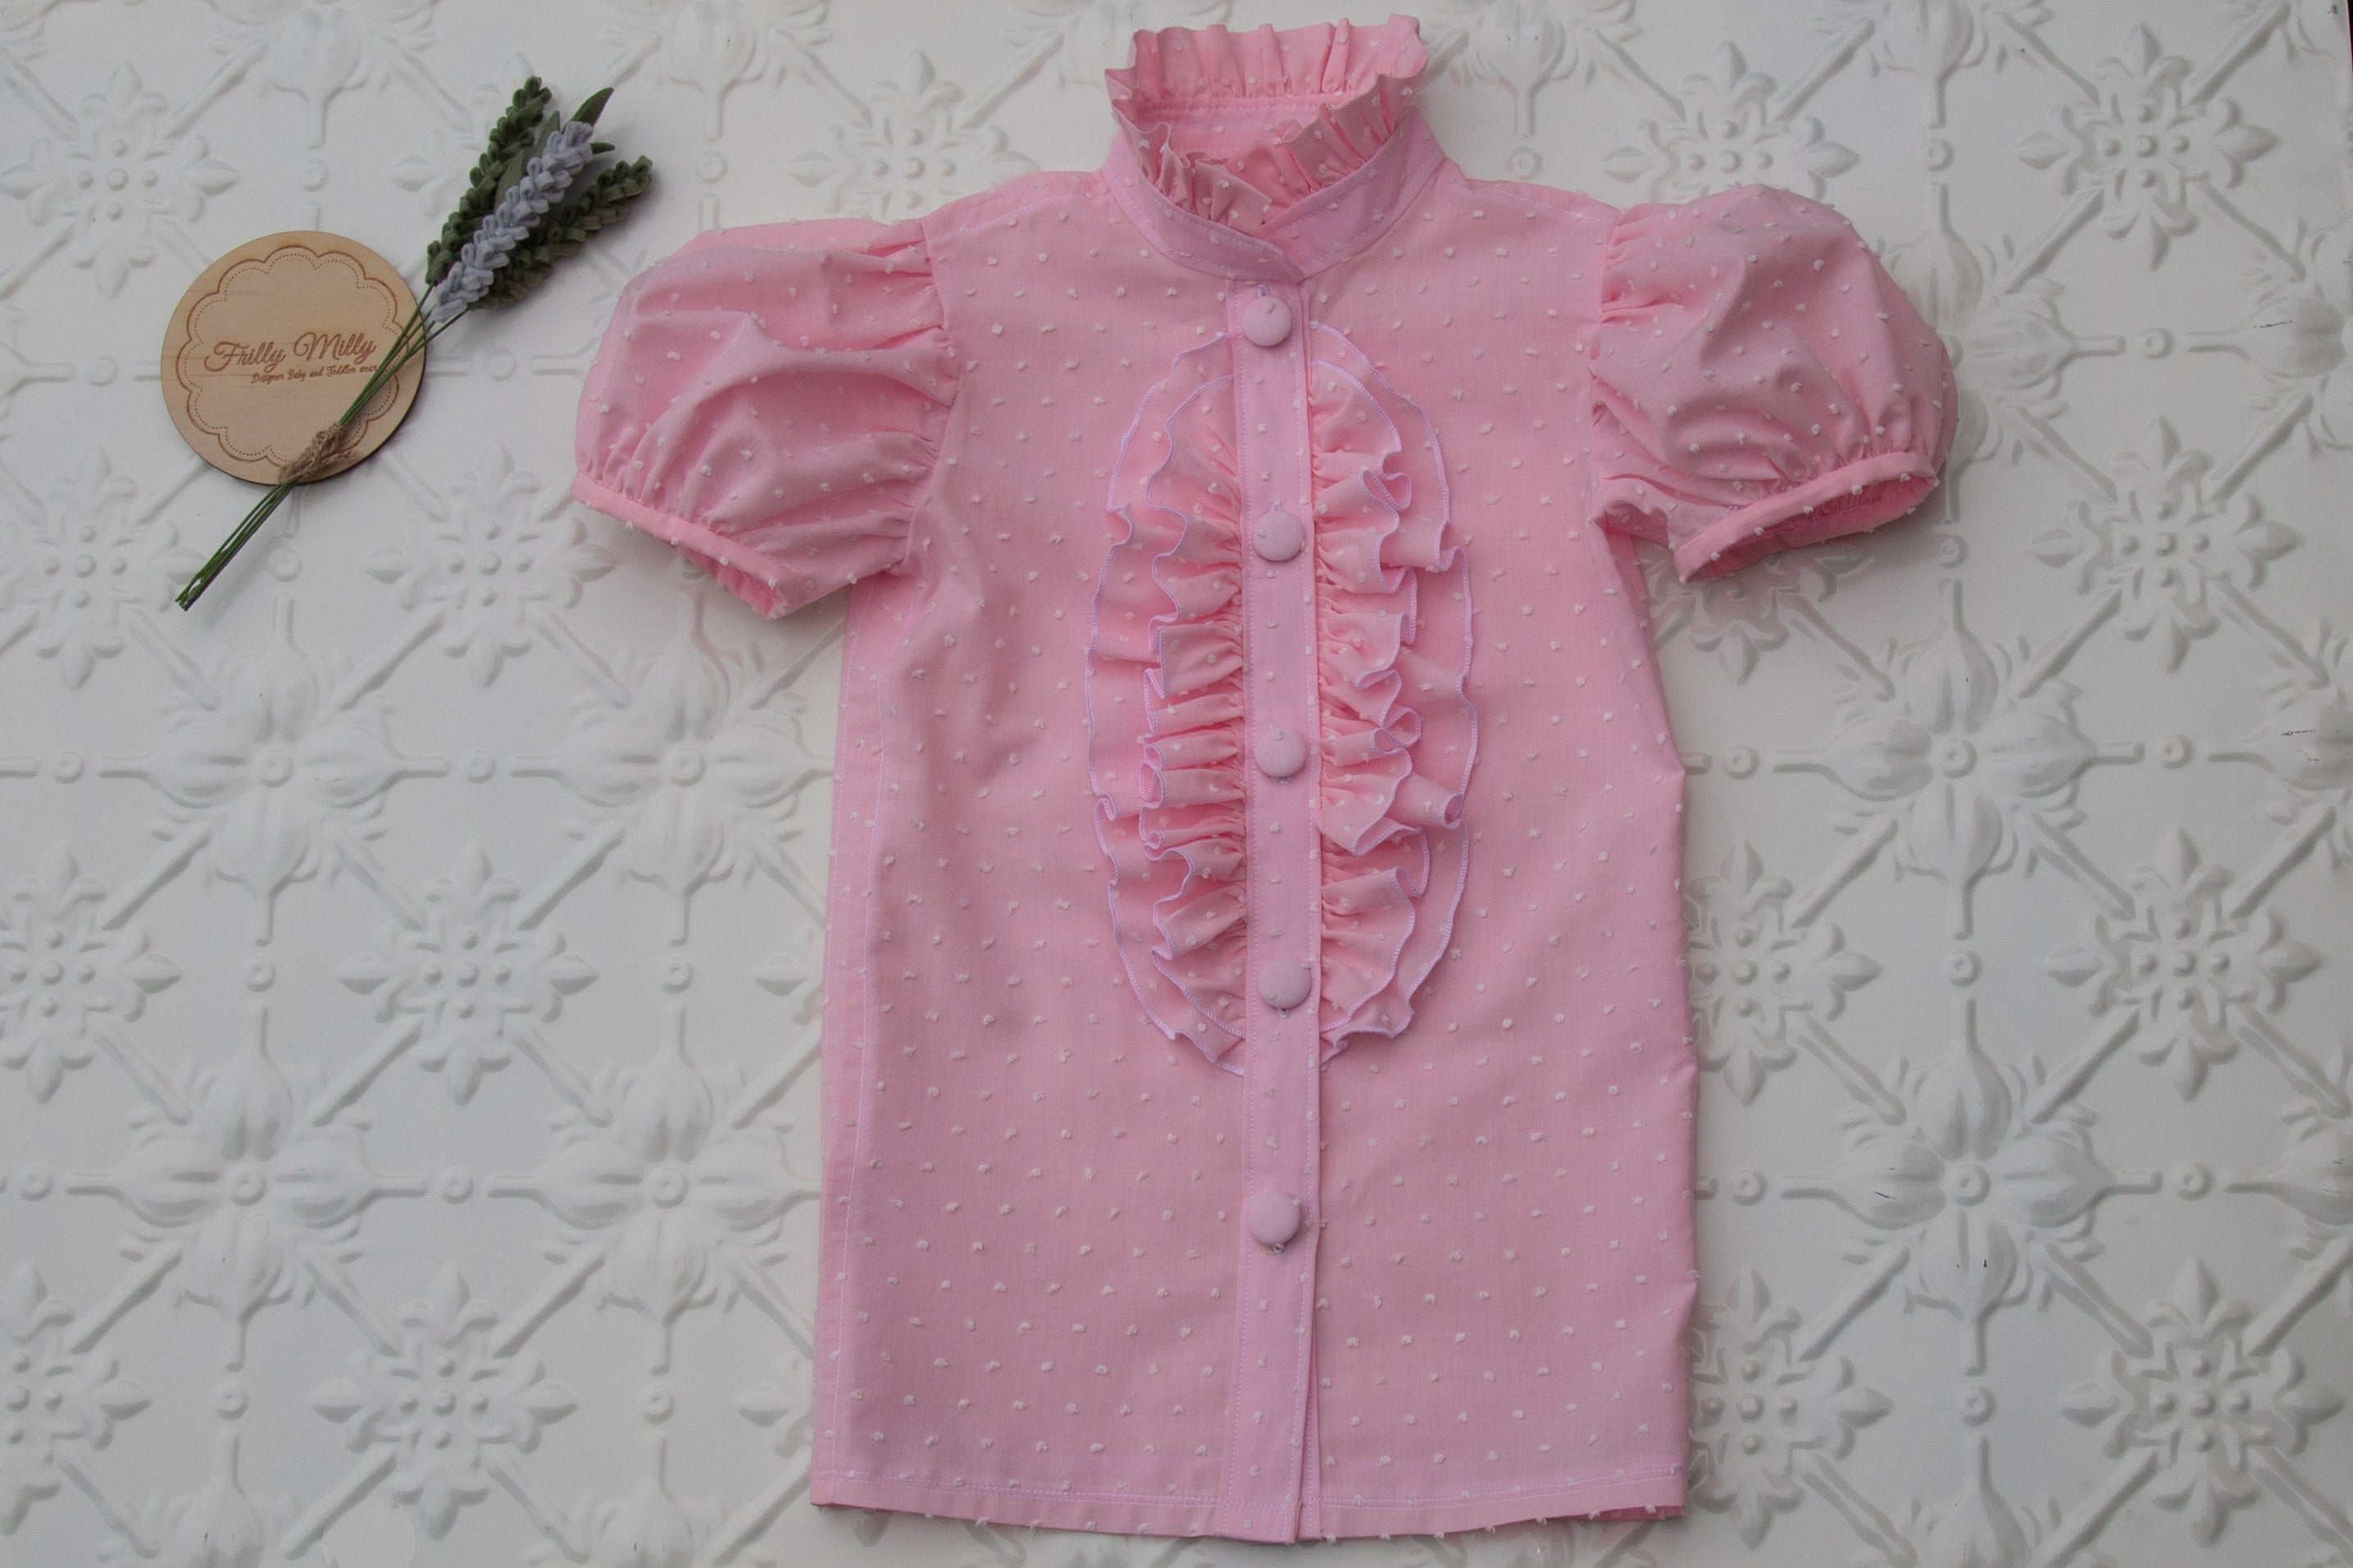 Taylor short sleeved blouse in pink